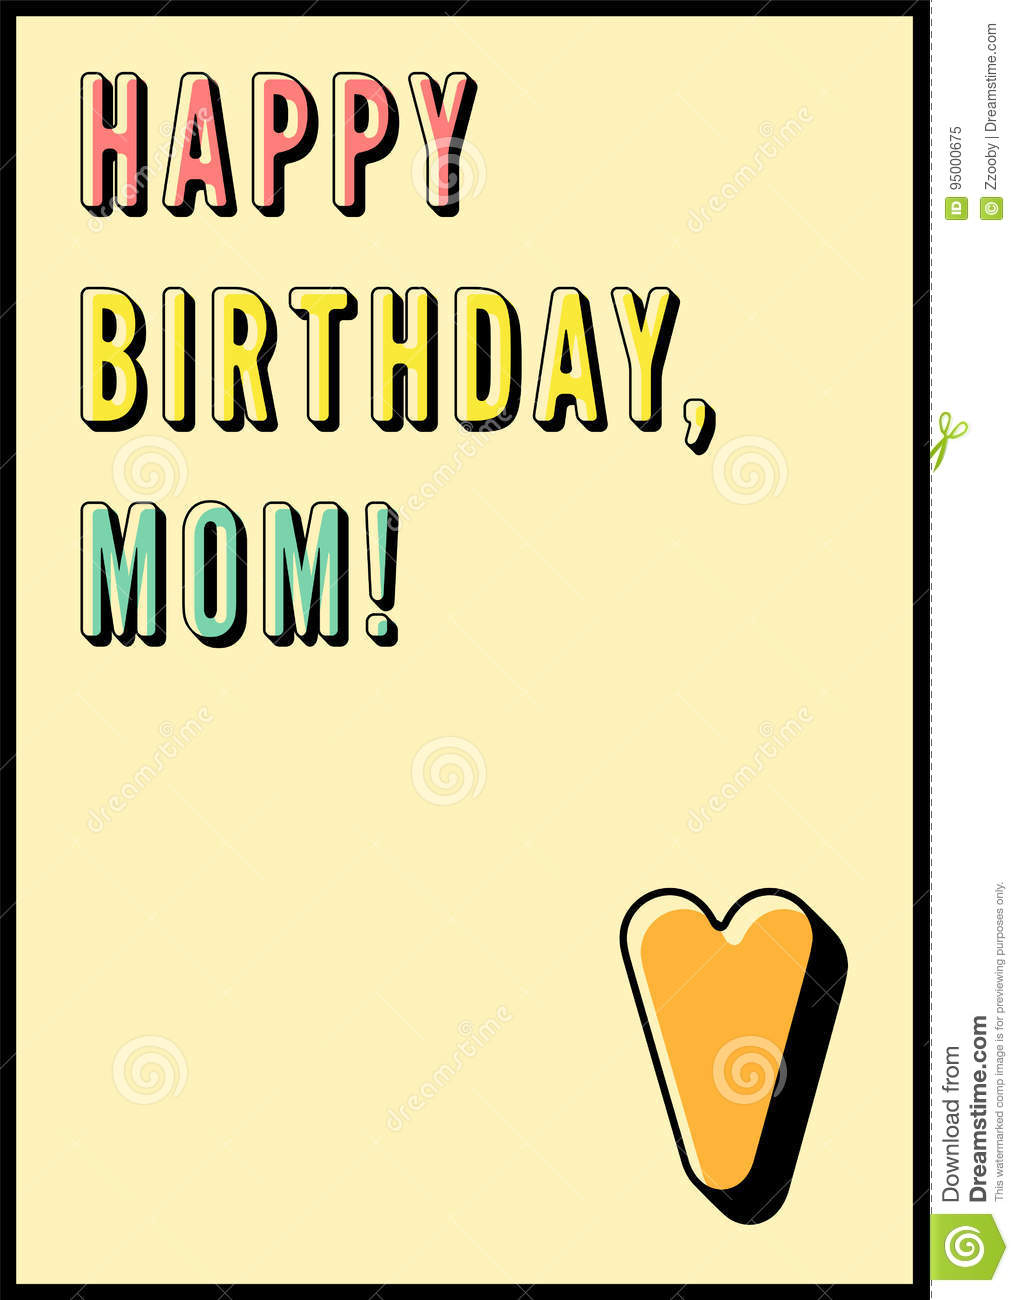 happy birthday mom typographical vintage birthday card retro vector illustration